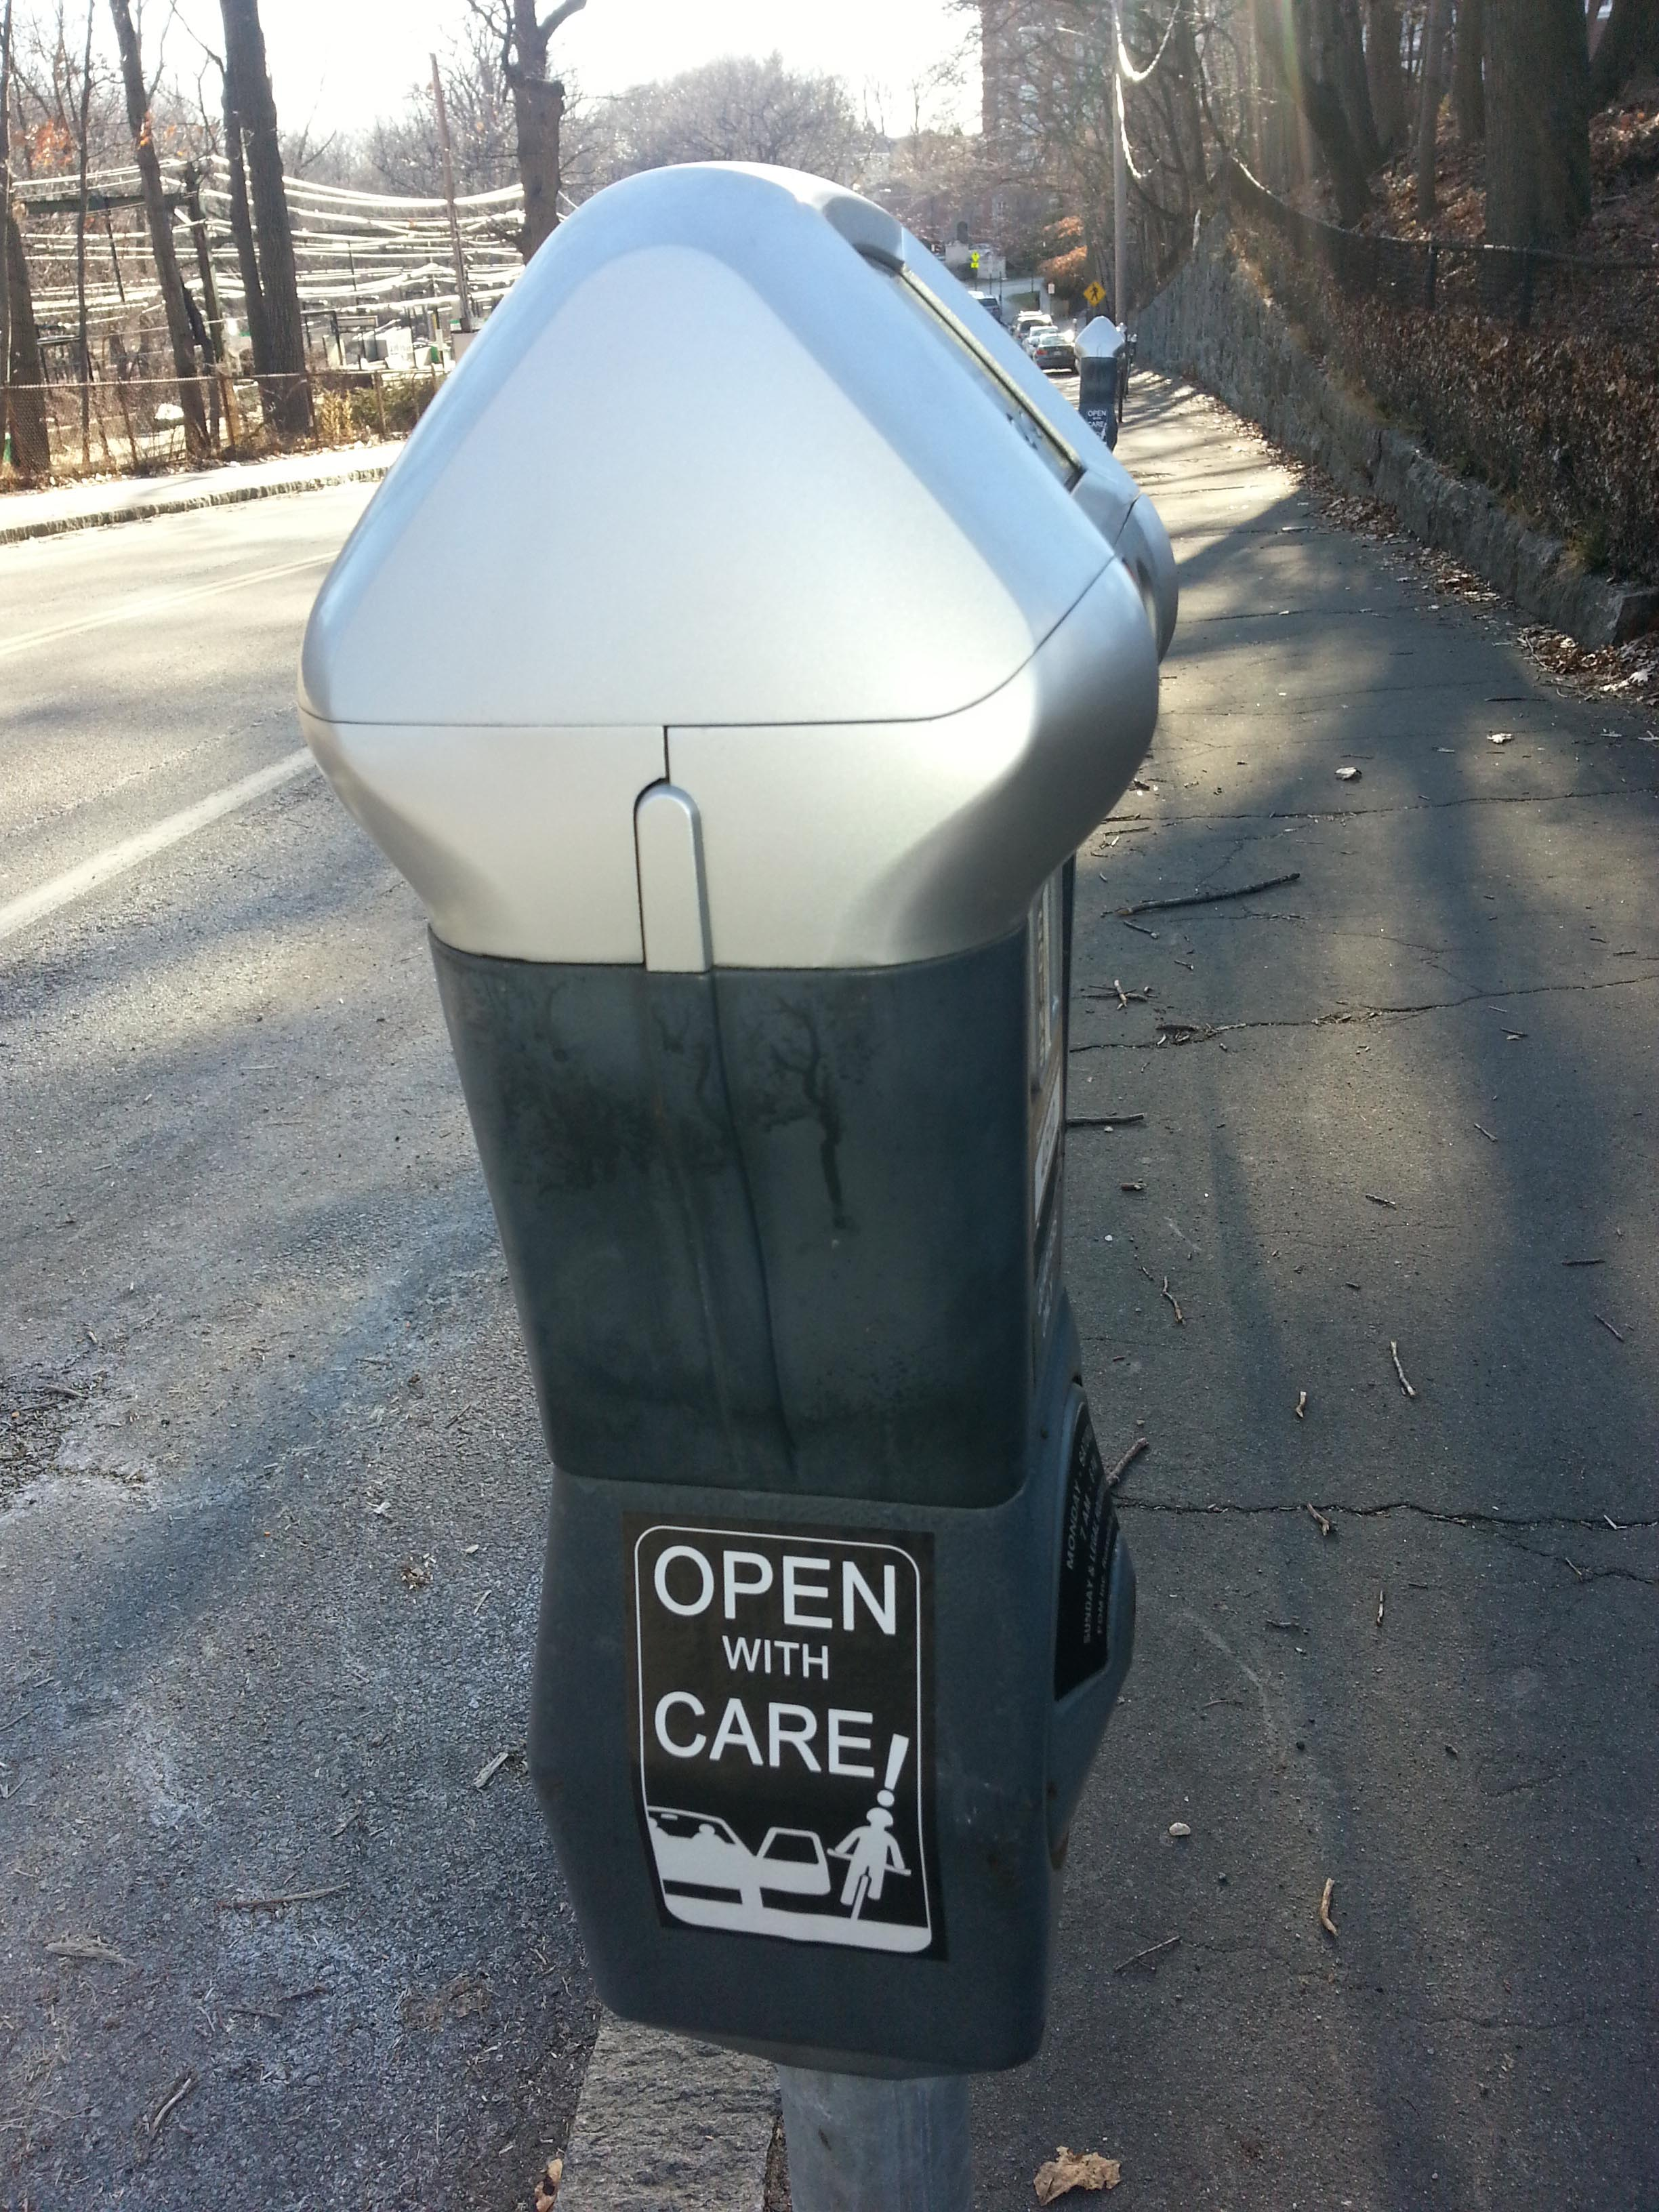 """Anti dooring sticker on parking meter, Brookline, MA, USA - 2016. Unknown bike safety activists """"vandalized"""" meters in Boston, Cambridge, Brookline & possibly elsewhere with """"Open With Care"""" advice. Click image to enlarge."""